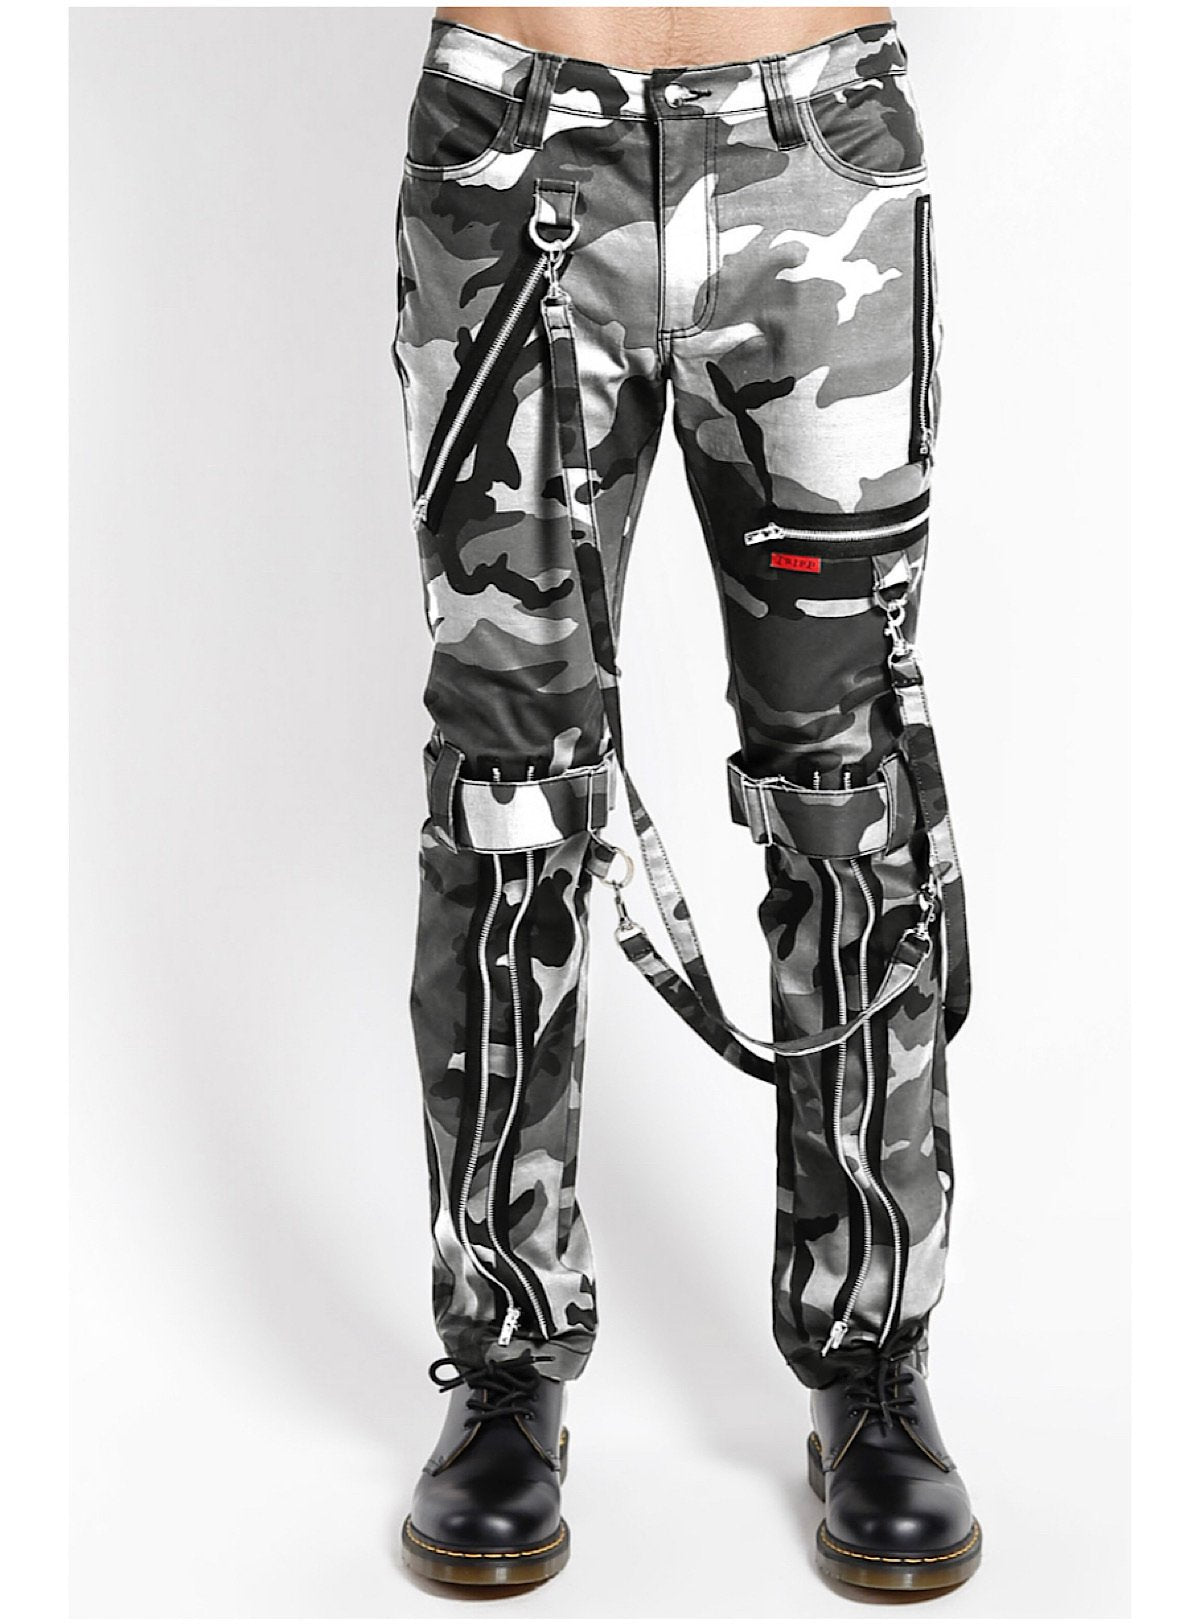 Buyer's Choice Jeans - Bondage - Grey Camo - IS267MP